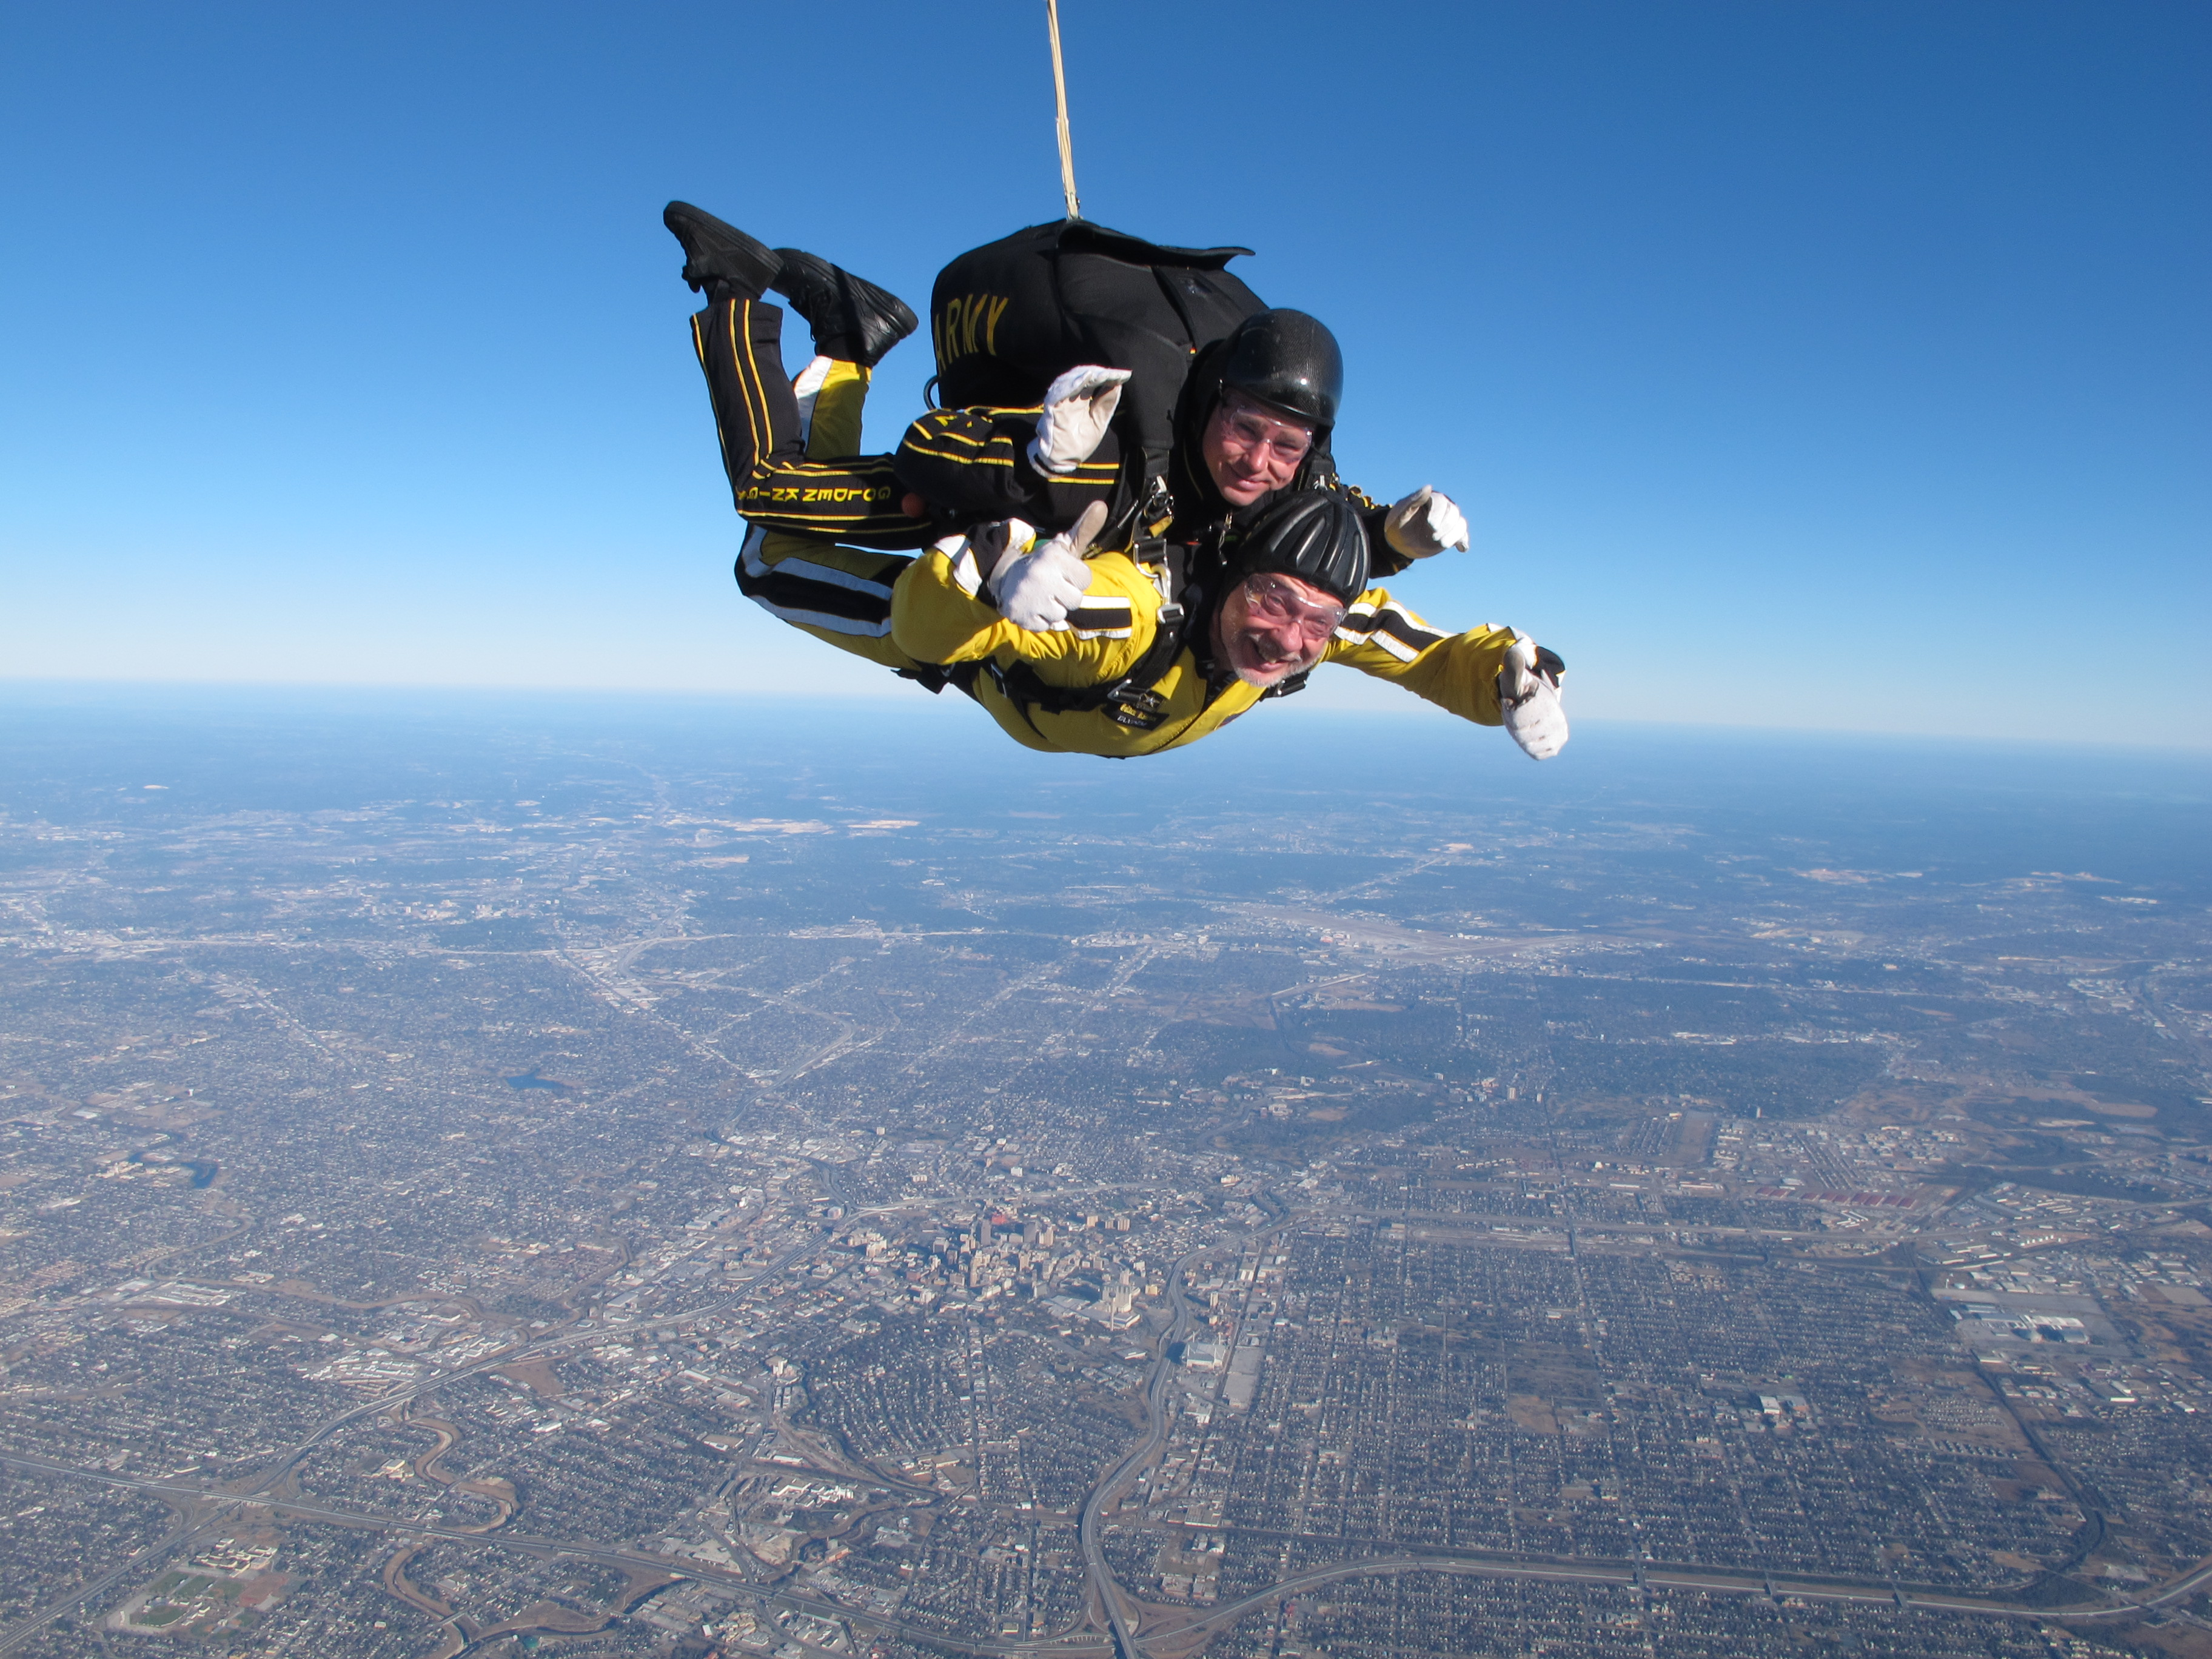 Photo of Wright State's Herb Dregalla (in yellow suit) skydiving with an Army Golden Knight